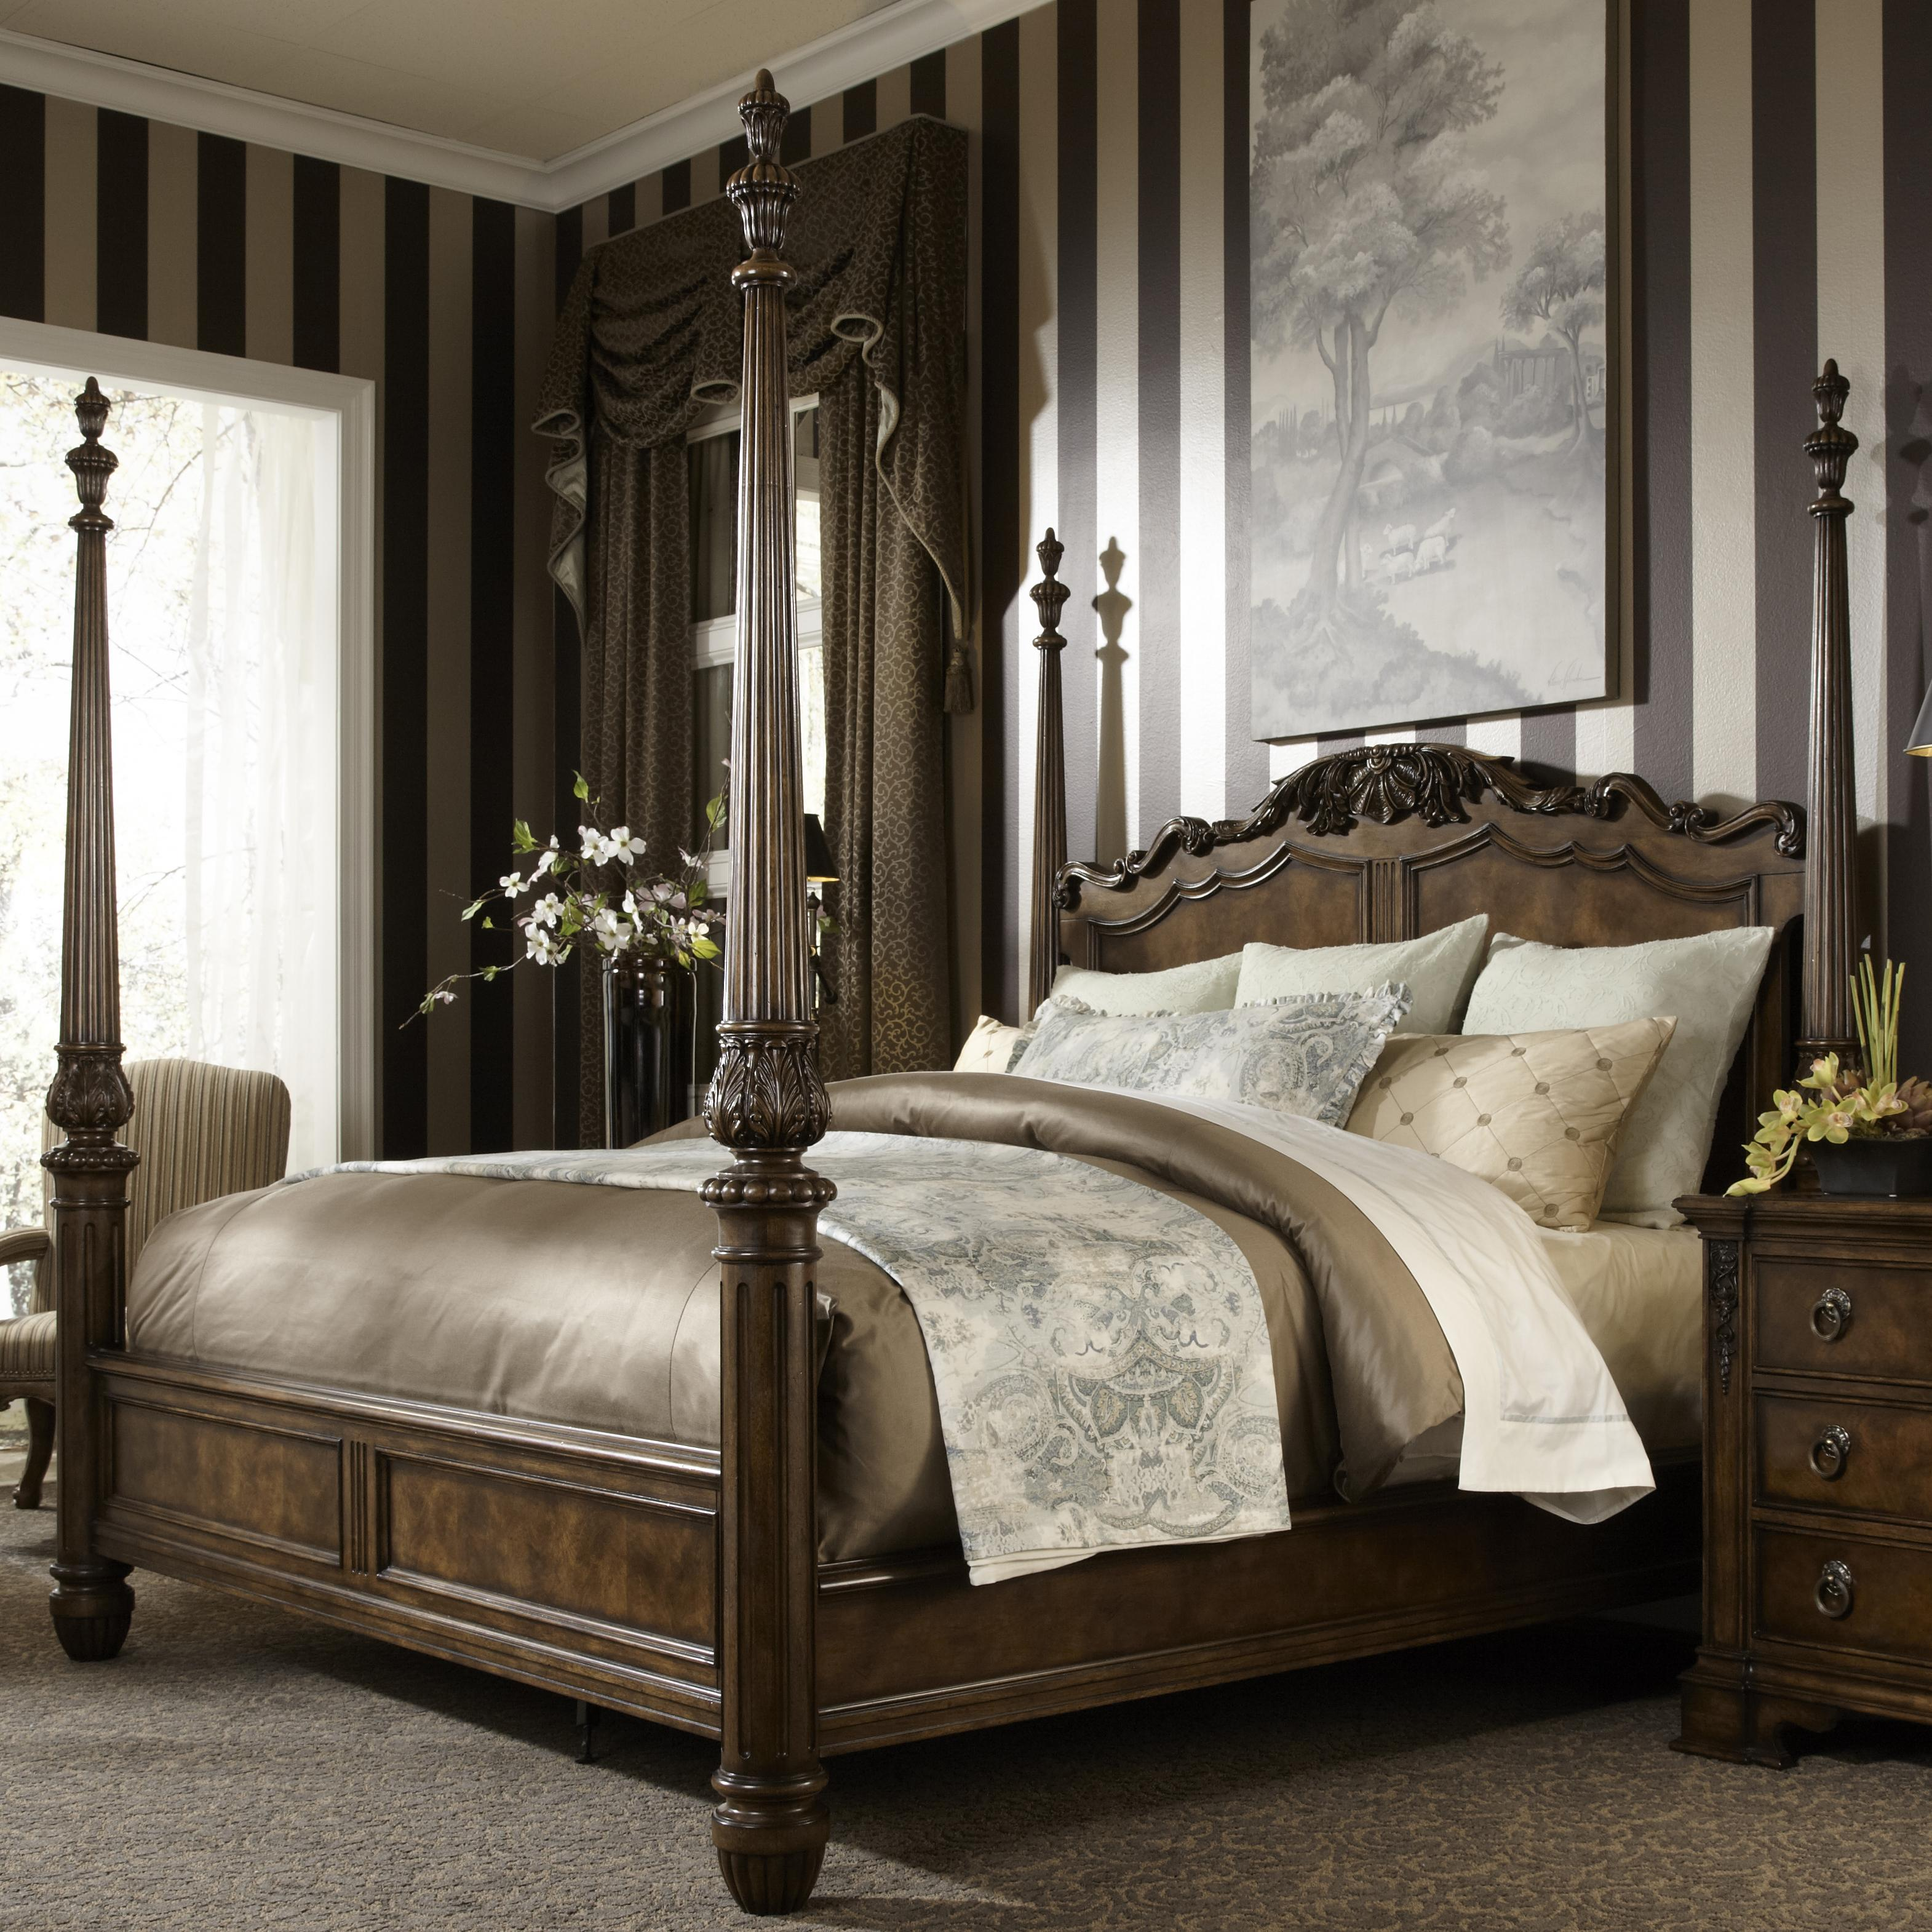 High Poster Bed King King Traditional Antique Style Four Poster Bed